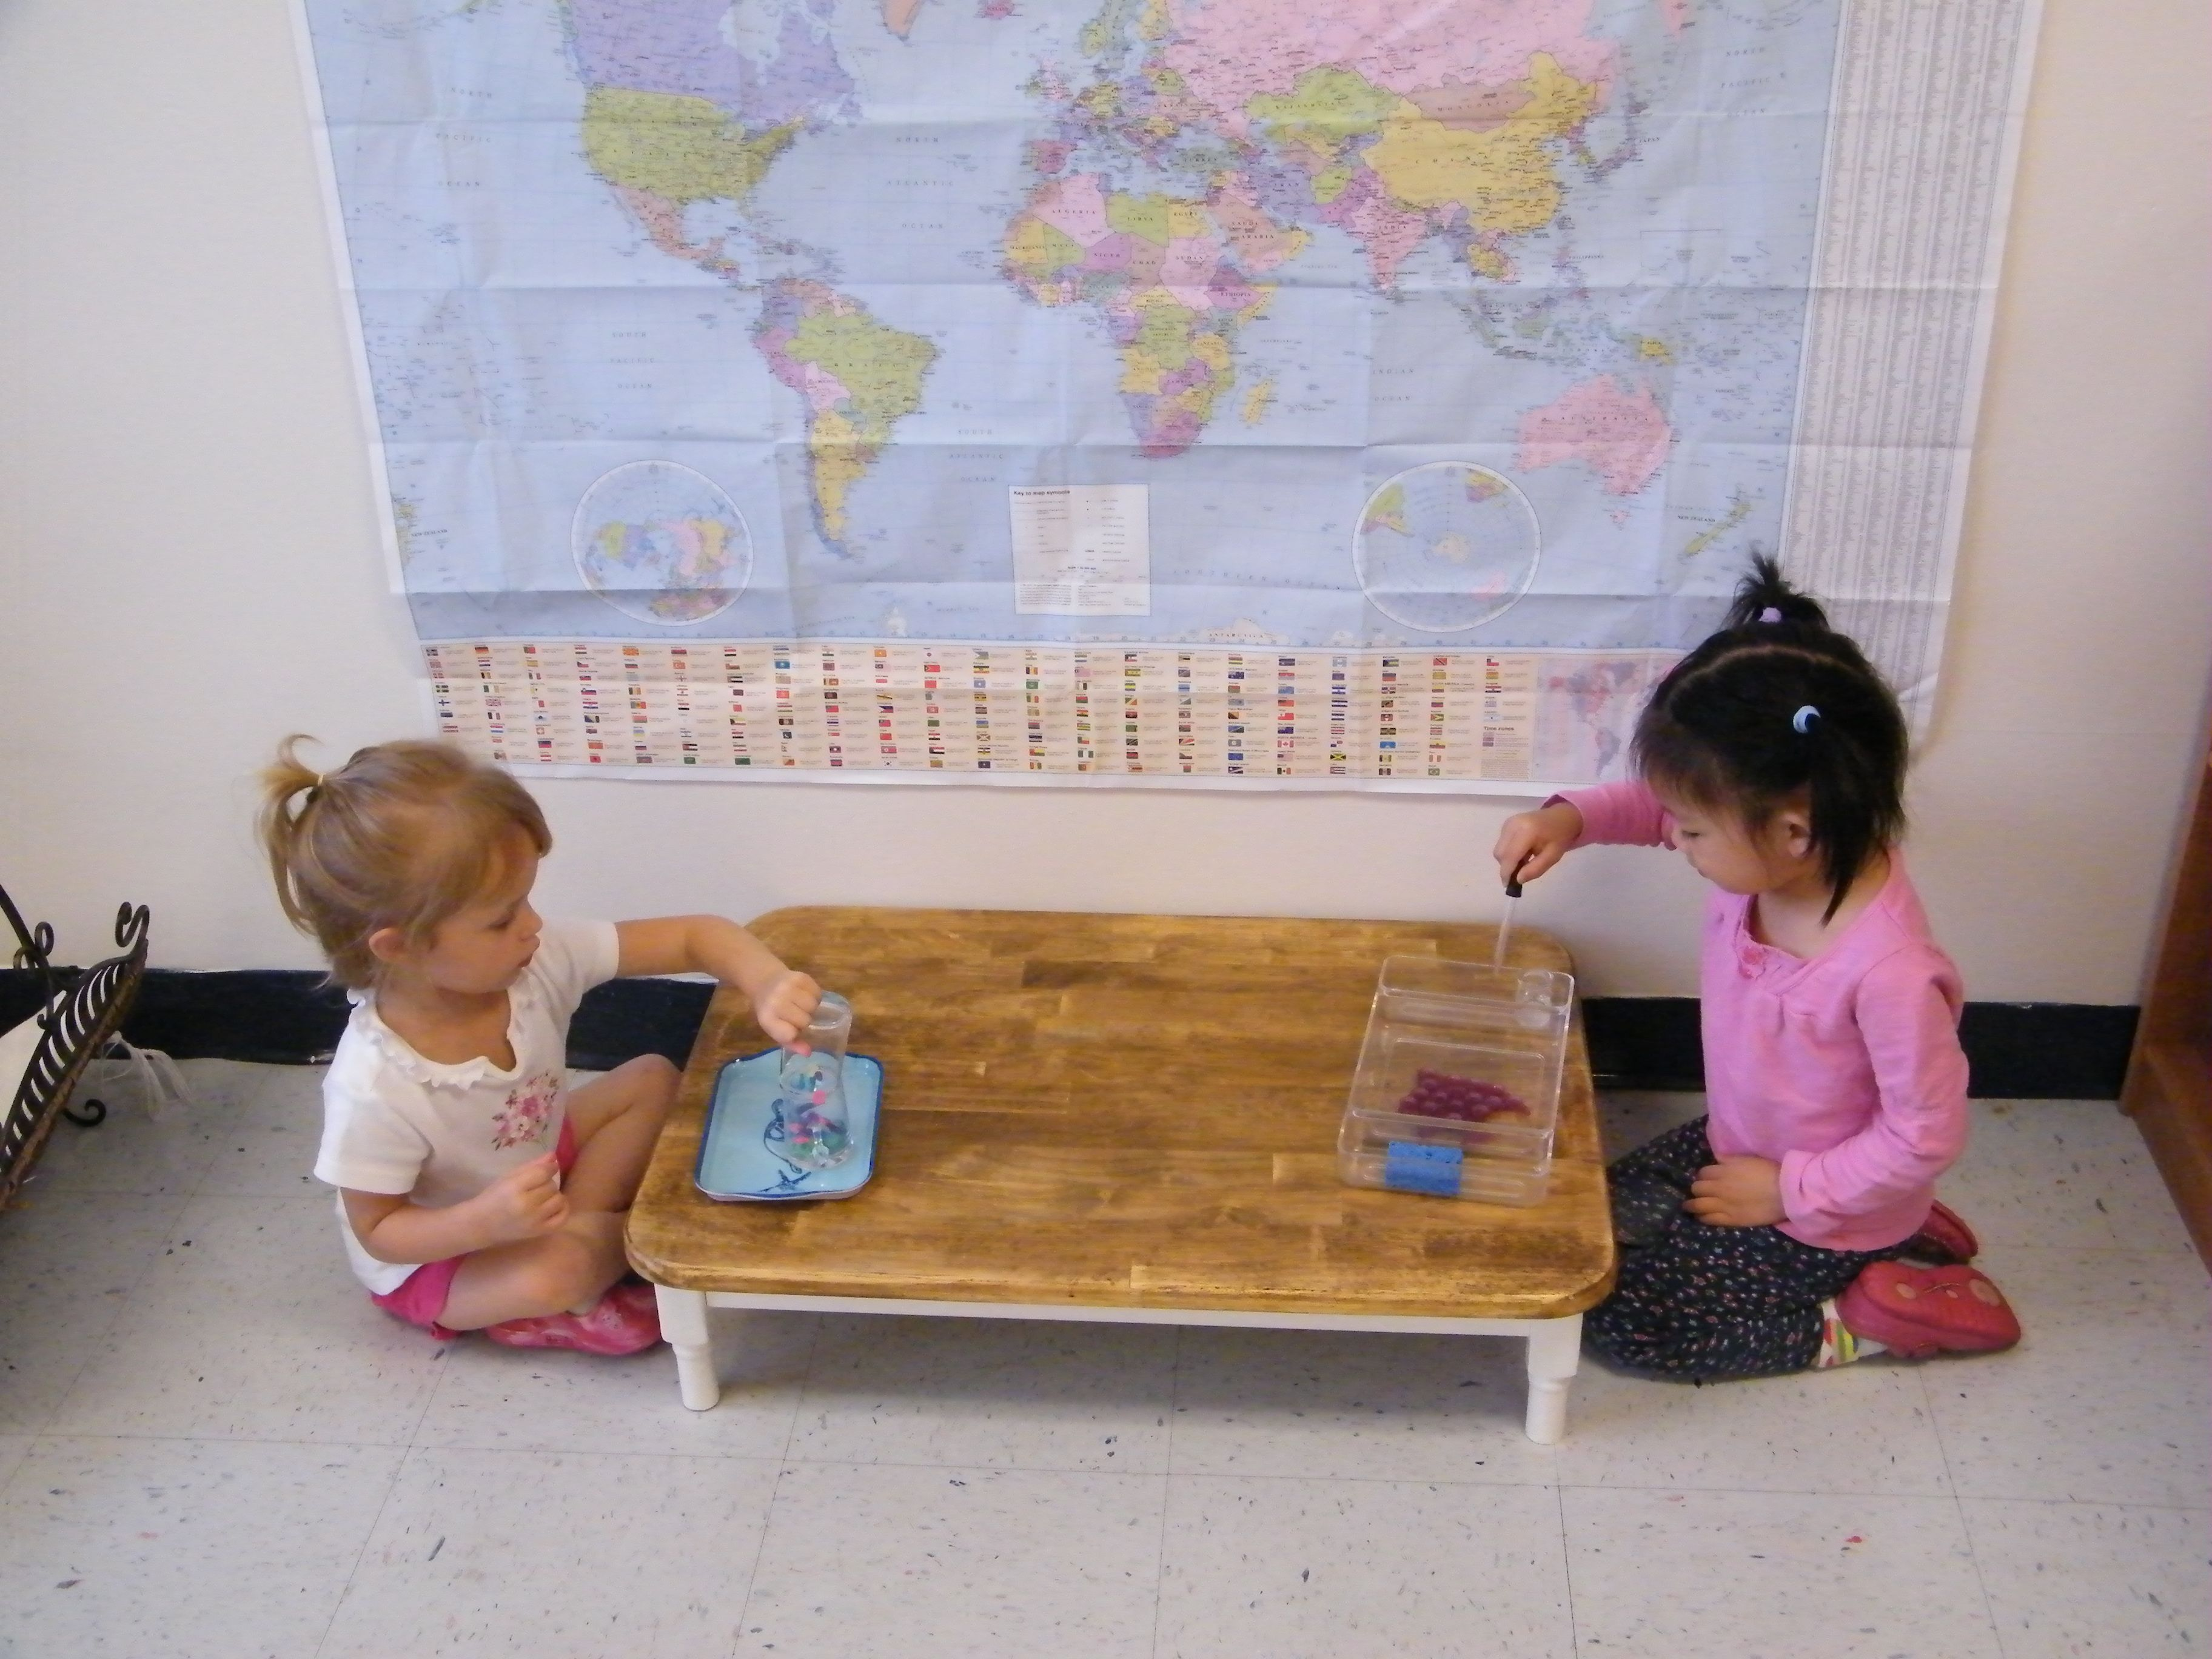 Awesome Look At This Little Table! Kids Can Sit Right On The Floor. I Think